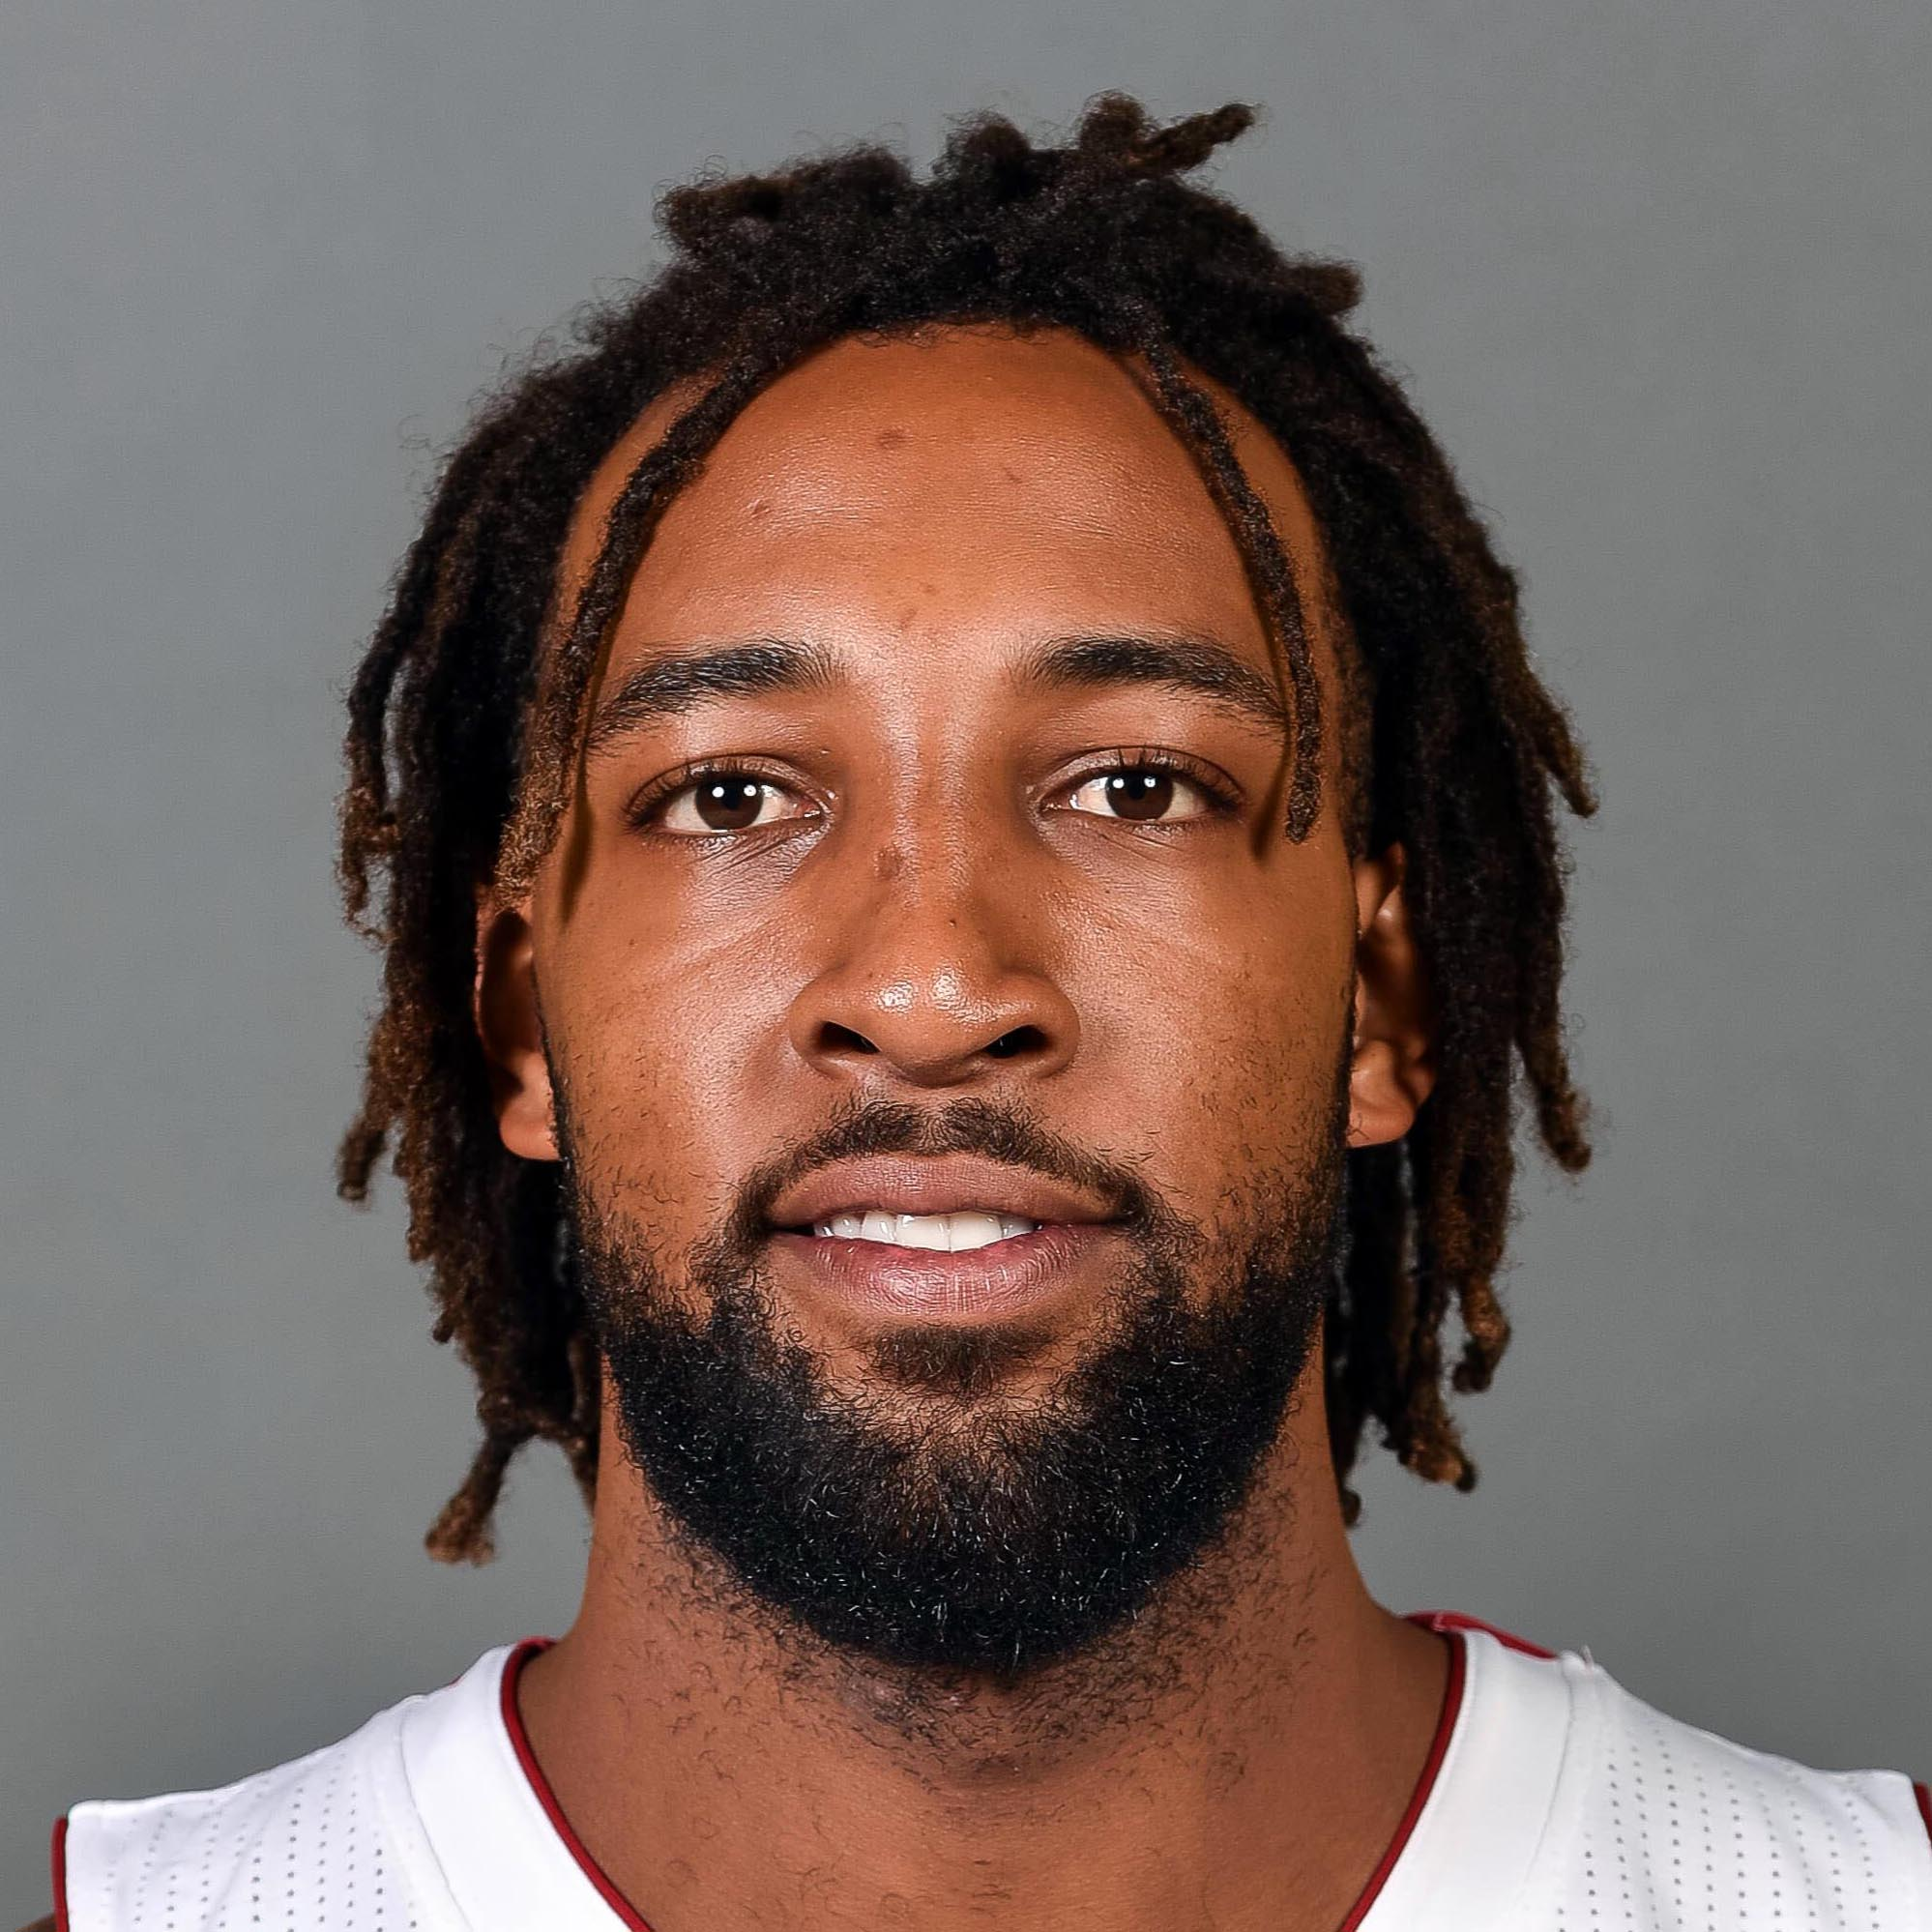 Sep 26, 2016; Miami, FL, USA; Miami Heat forward Derrick Williams (22) poses during photo day at American Airlines Arena. Mandatory Credit: Steve Mitchell-USA TODAY Sports